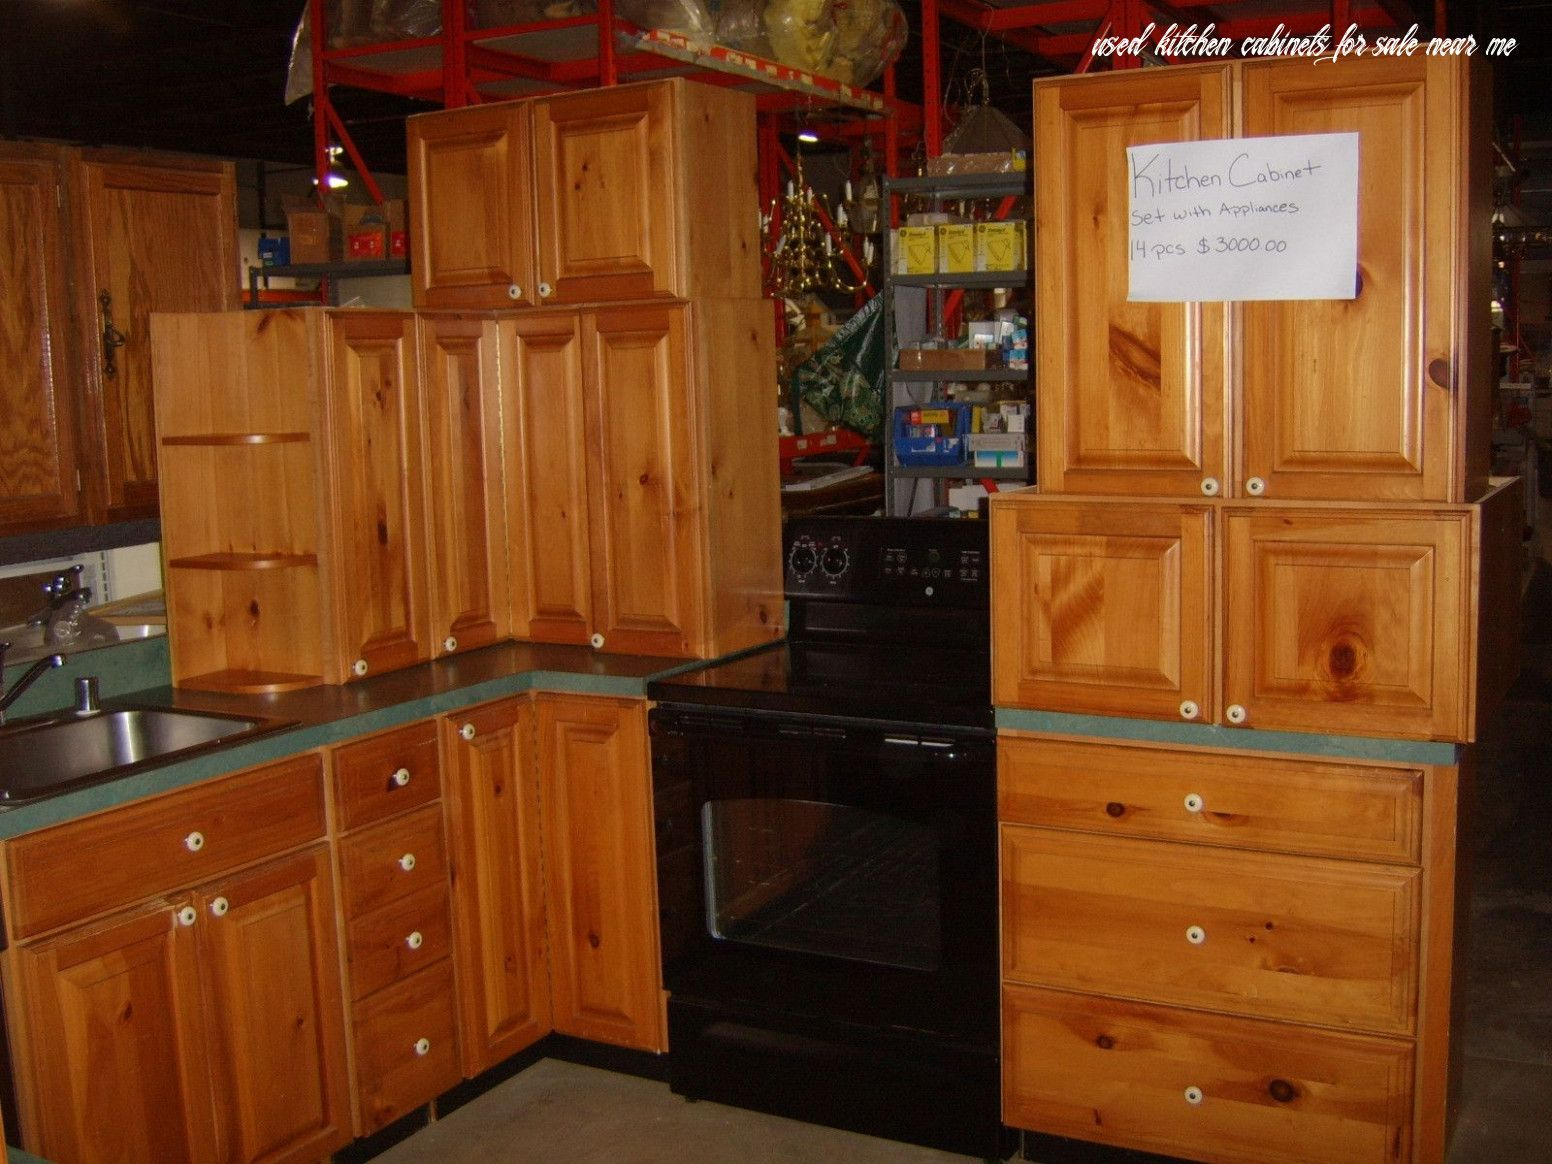 5 Quick Tips For Used Kitchen Cabinets For Sale Near Me In 2020 Kitchen Cabinets For Sale Used Kitchen Cabinets Cheap Kitchen Cabinets